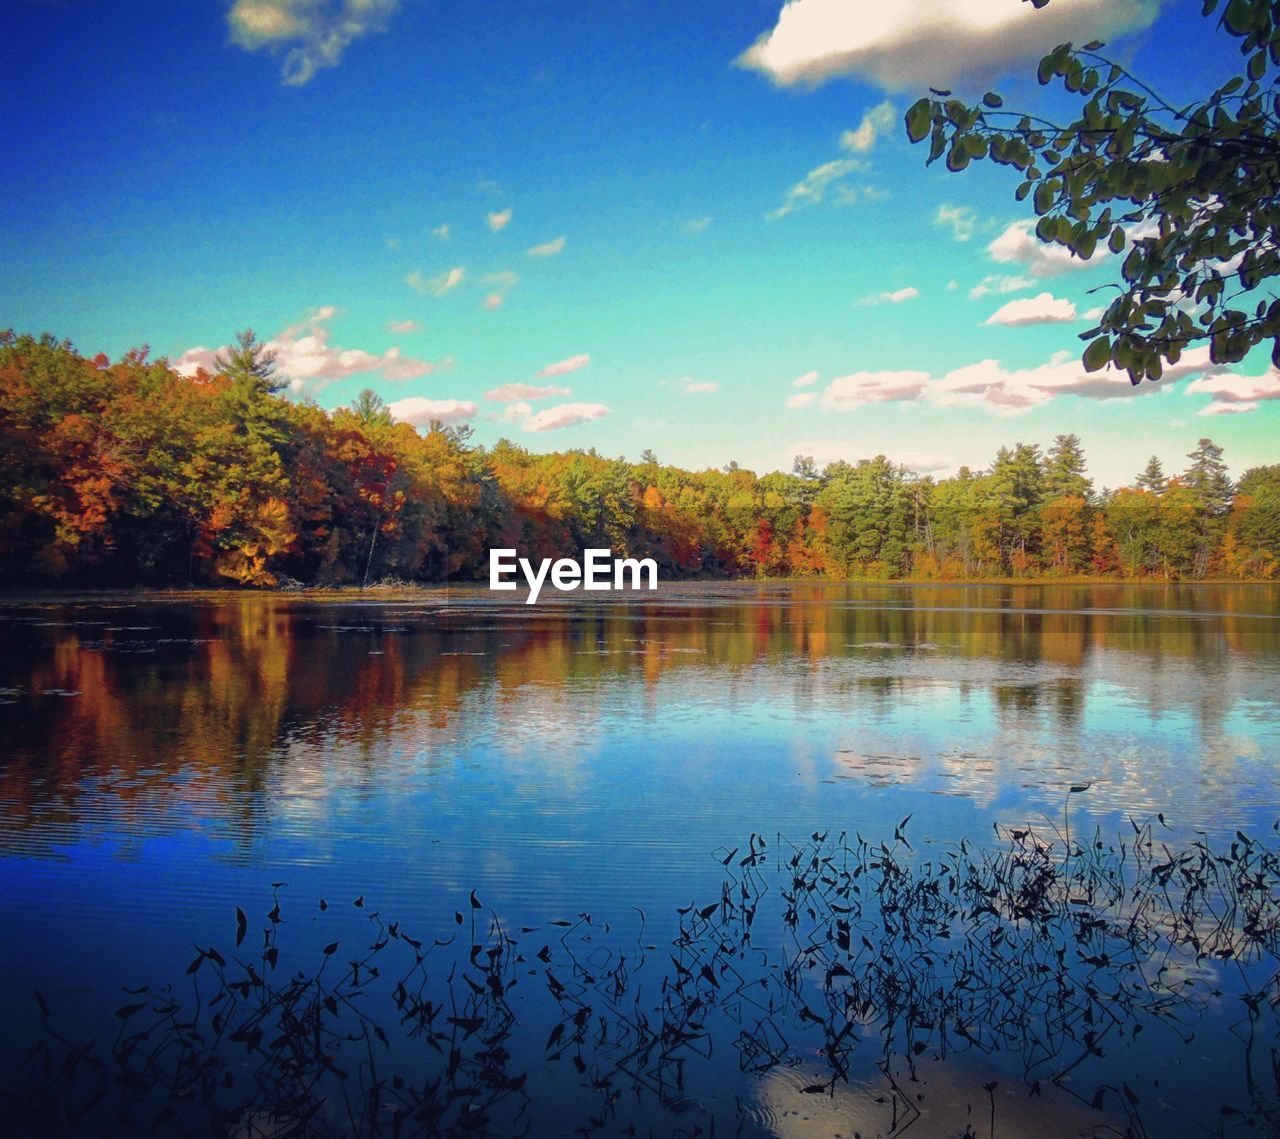 water, tree, lake, nature, beauty in nature, reflection, scenics, autumn, tranquil scene, tranquility, no people, sky, leaf, growth, outdoors, day, waterfront, floating on water, animal themes, bird